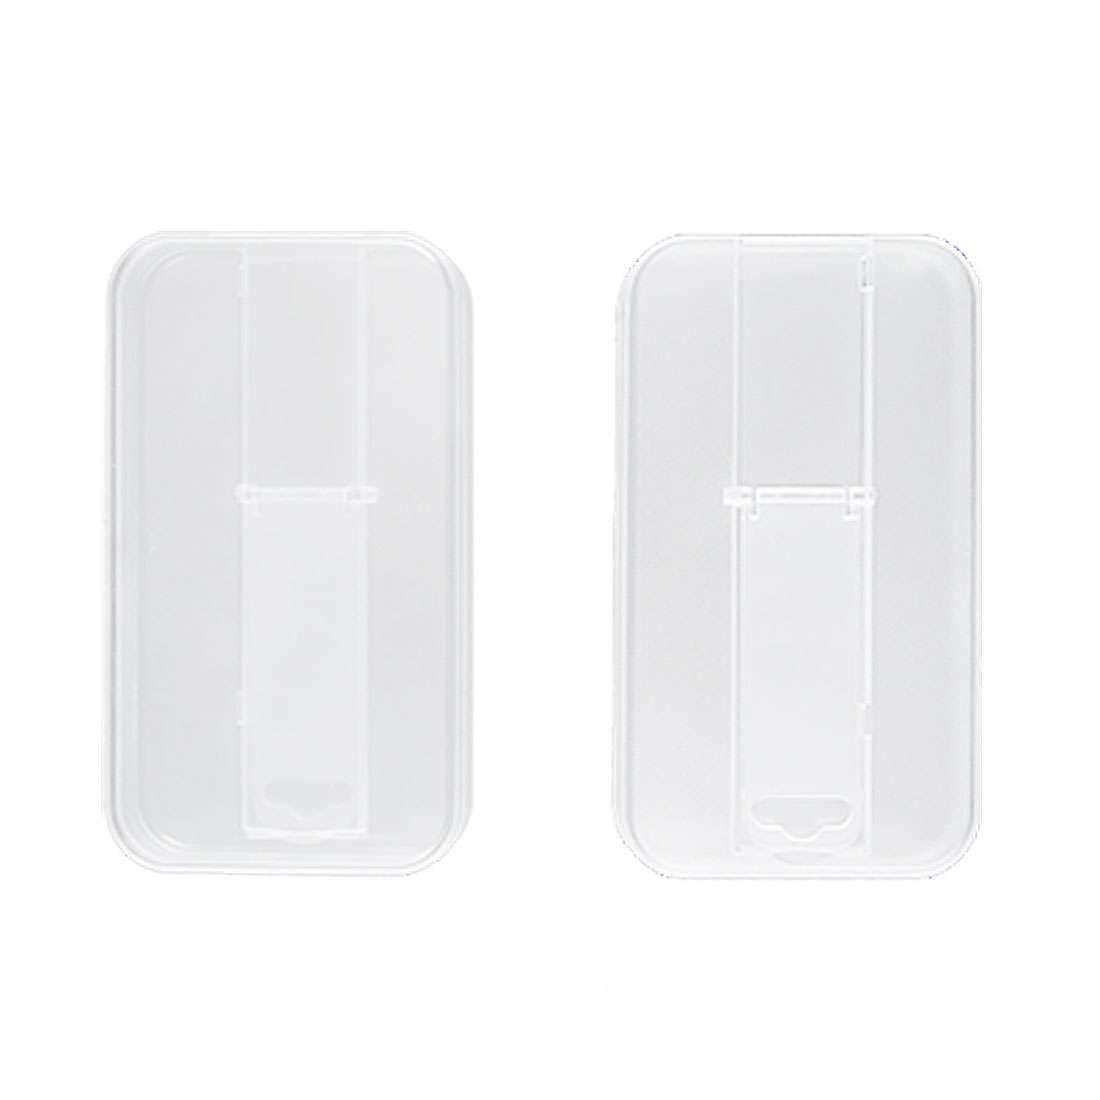 Clear Hard Plastic Stand Holder Case for iPhone 4 4G